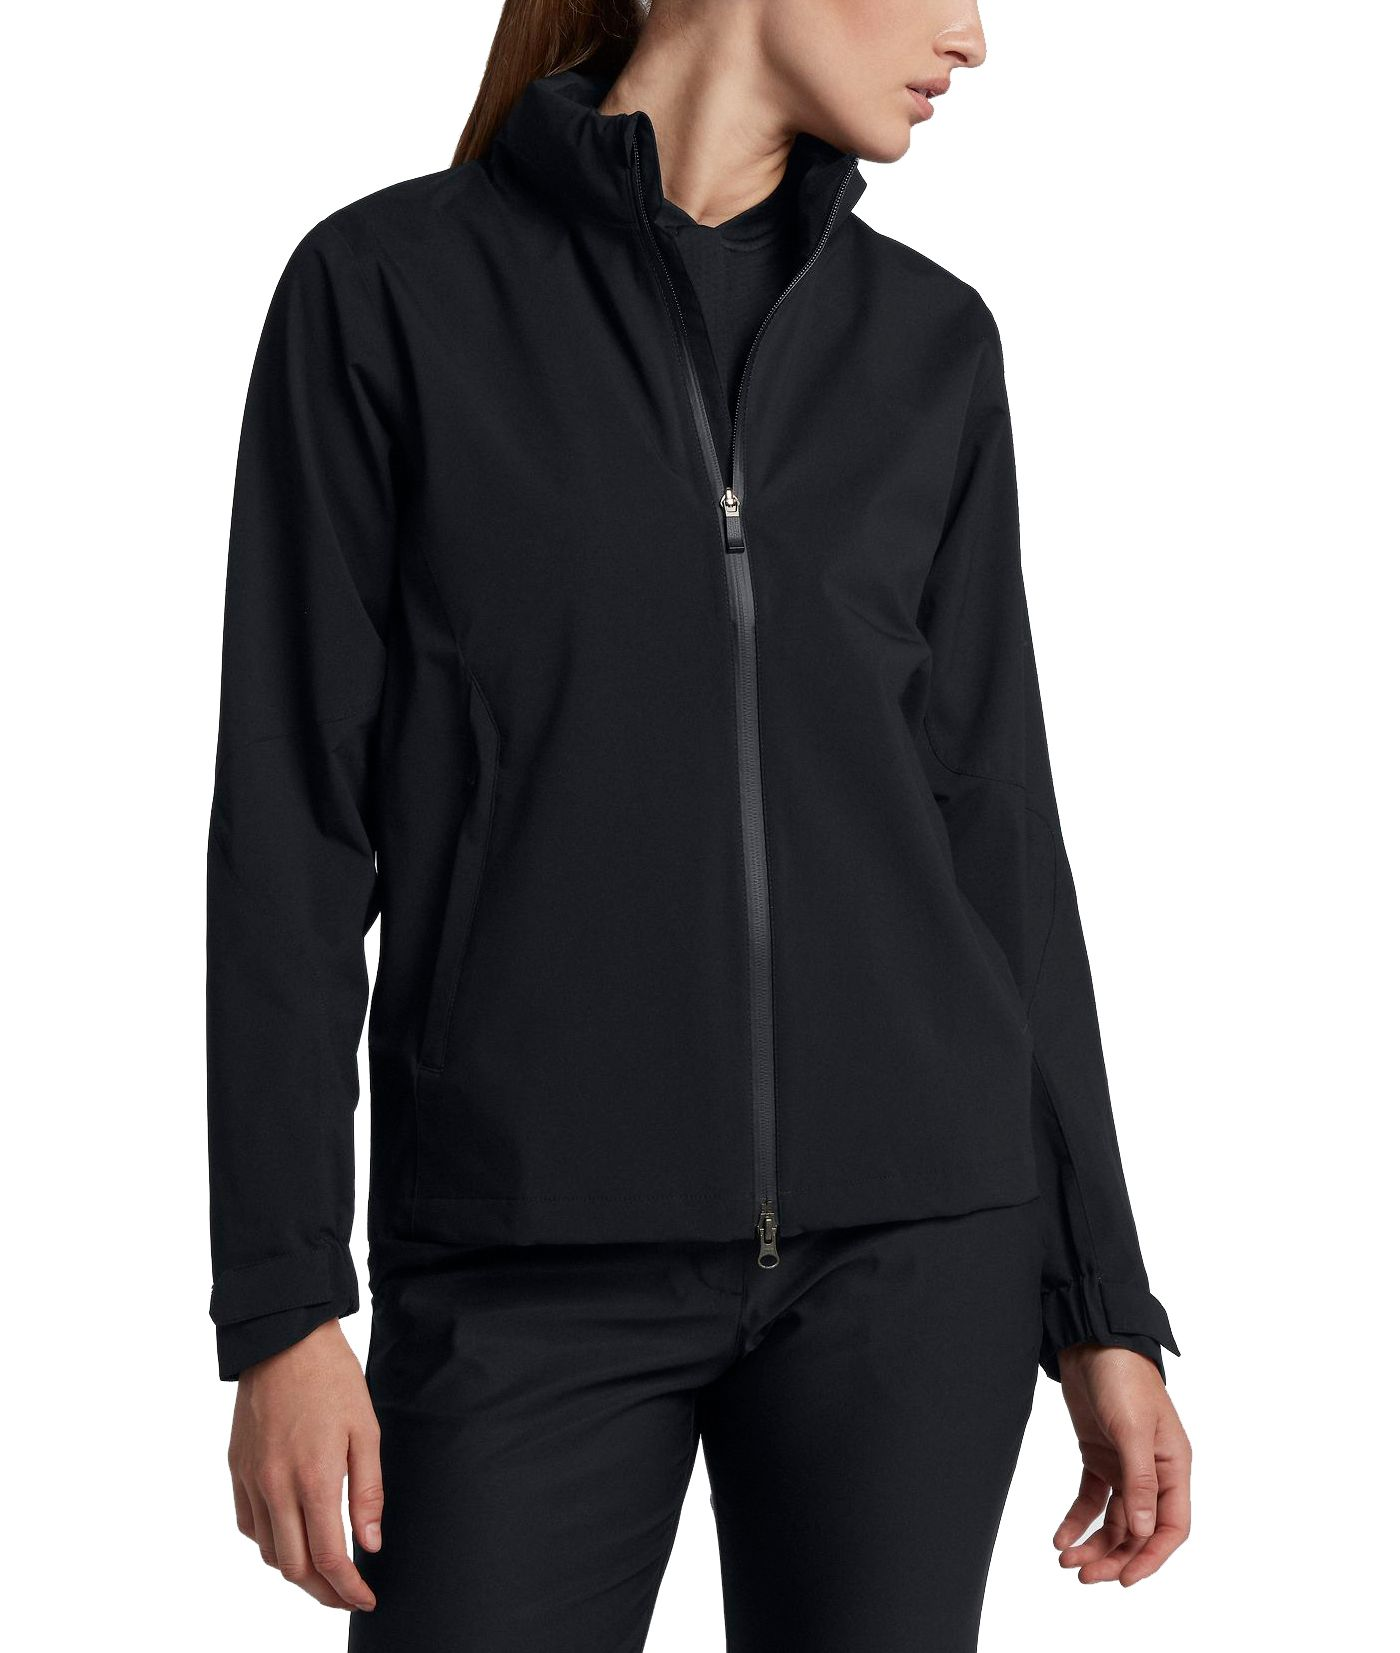 Nike Women's HyperShield Golf Jacket